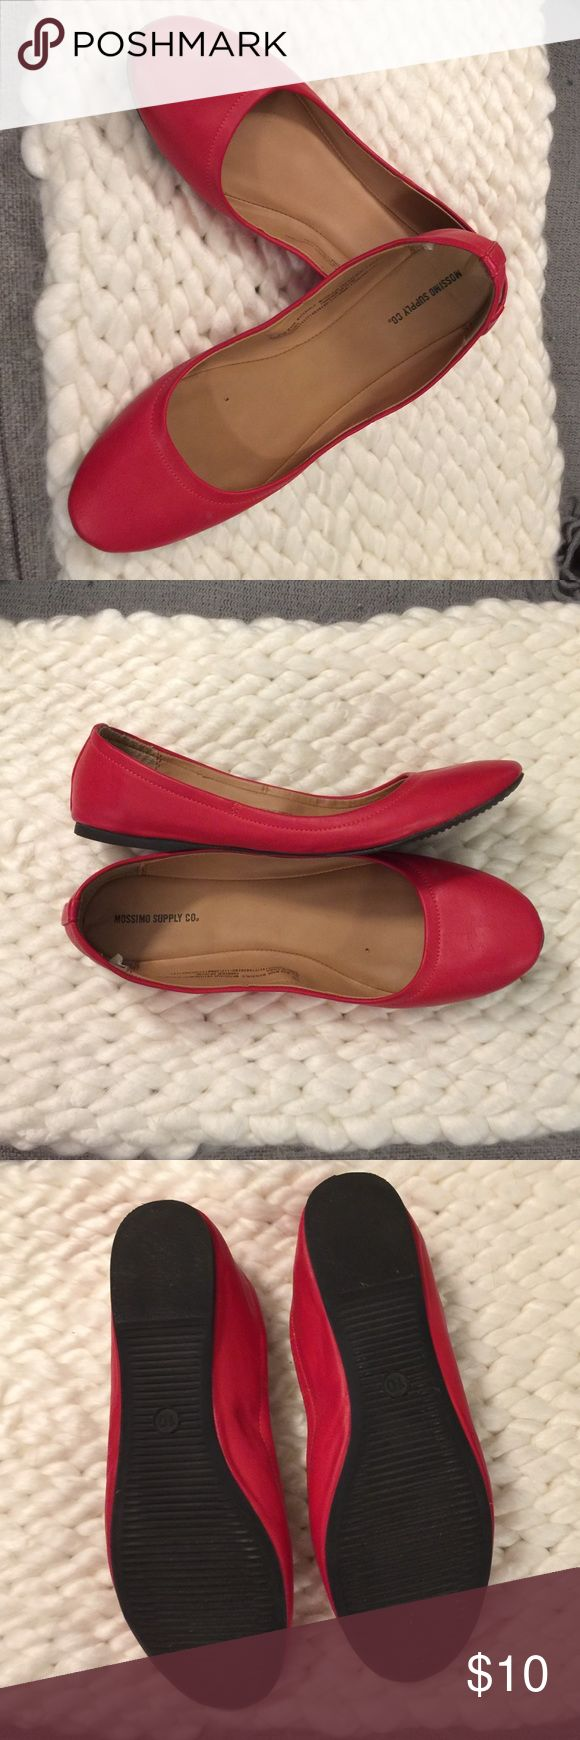 Red Ballet flats Excellent condition but no more room for shoes. No scuffs or scratches. Mossimo Supply Company. Mossimo Supply Co Shoes Flats & Loafers